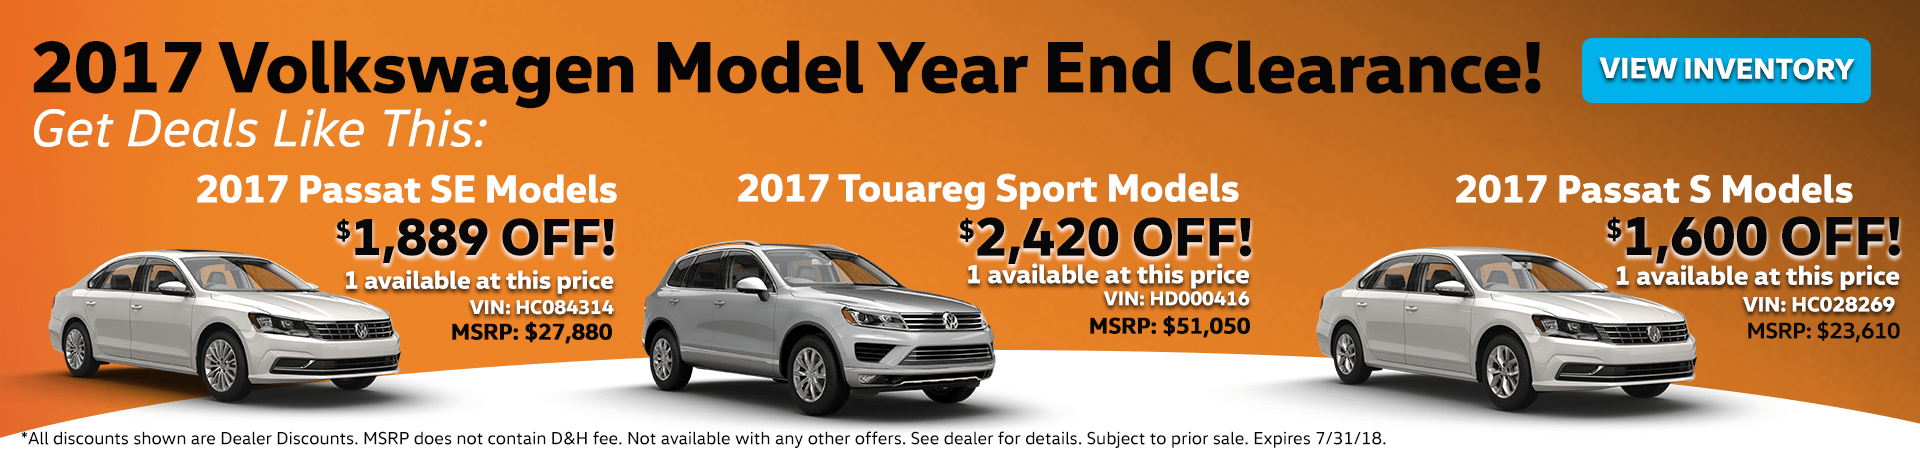 Model Year End Clearance